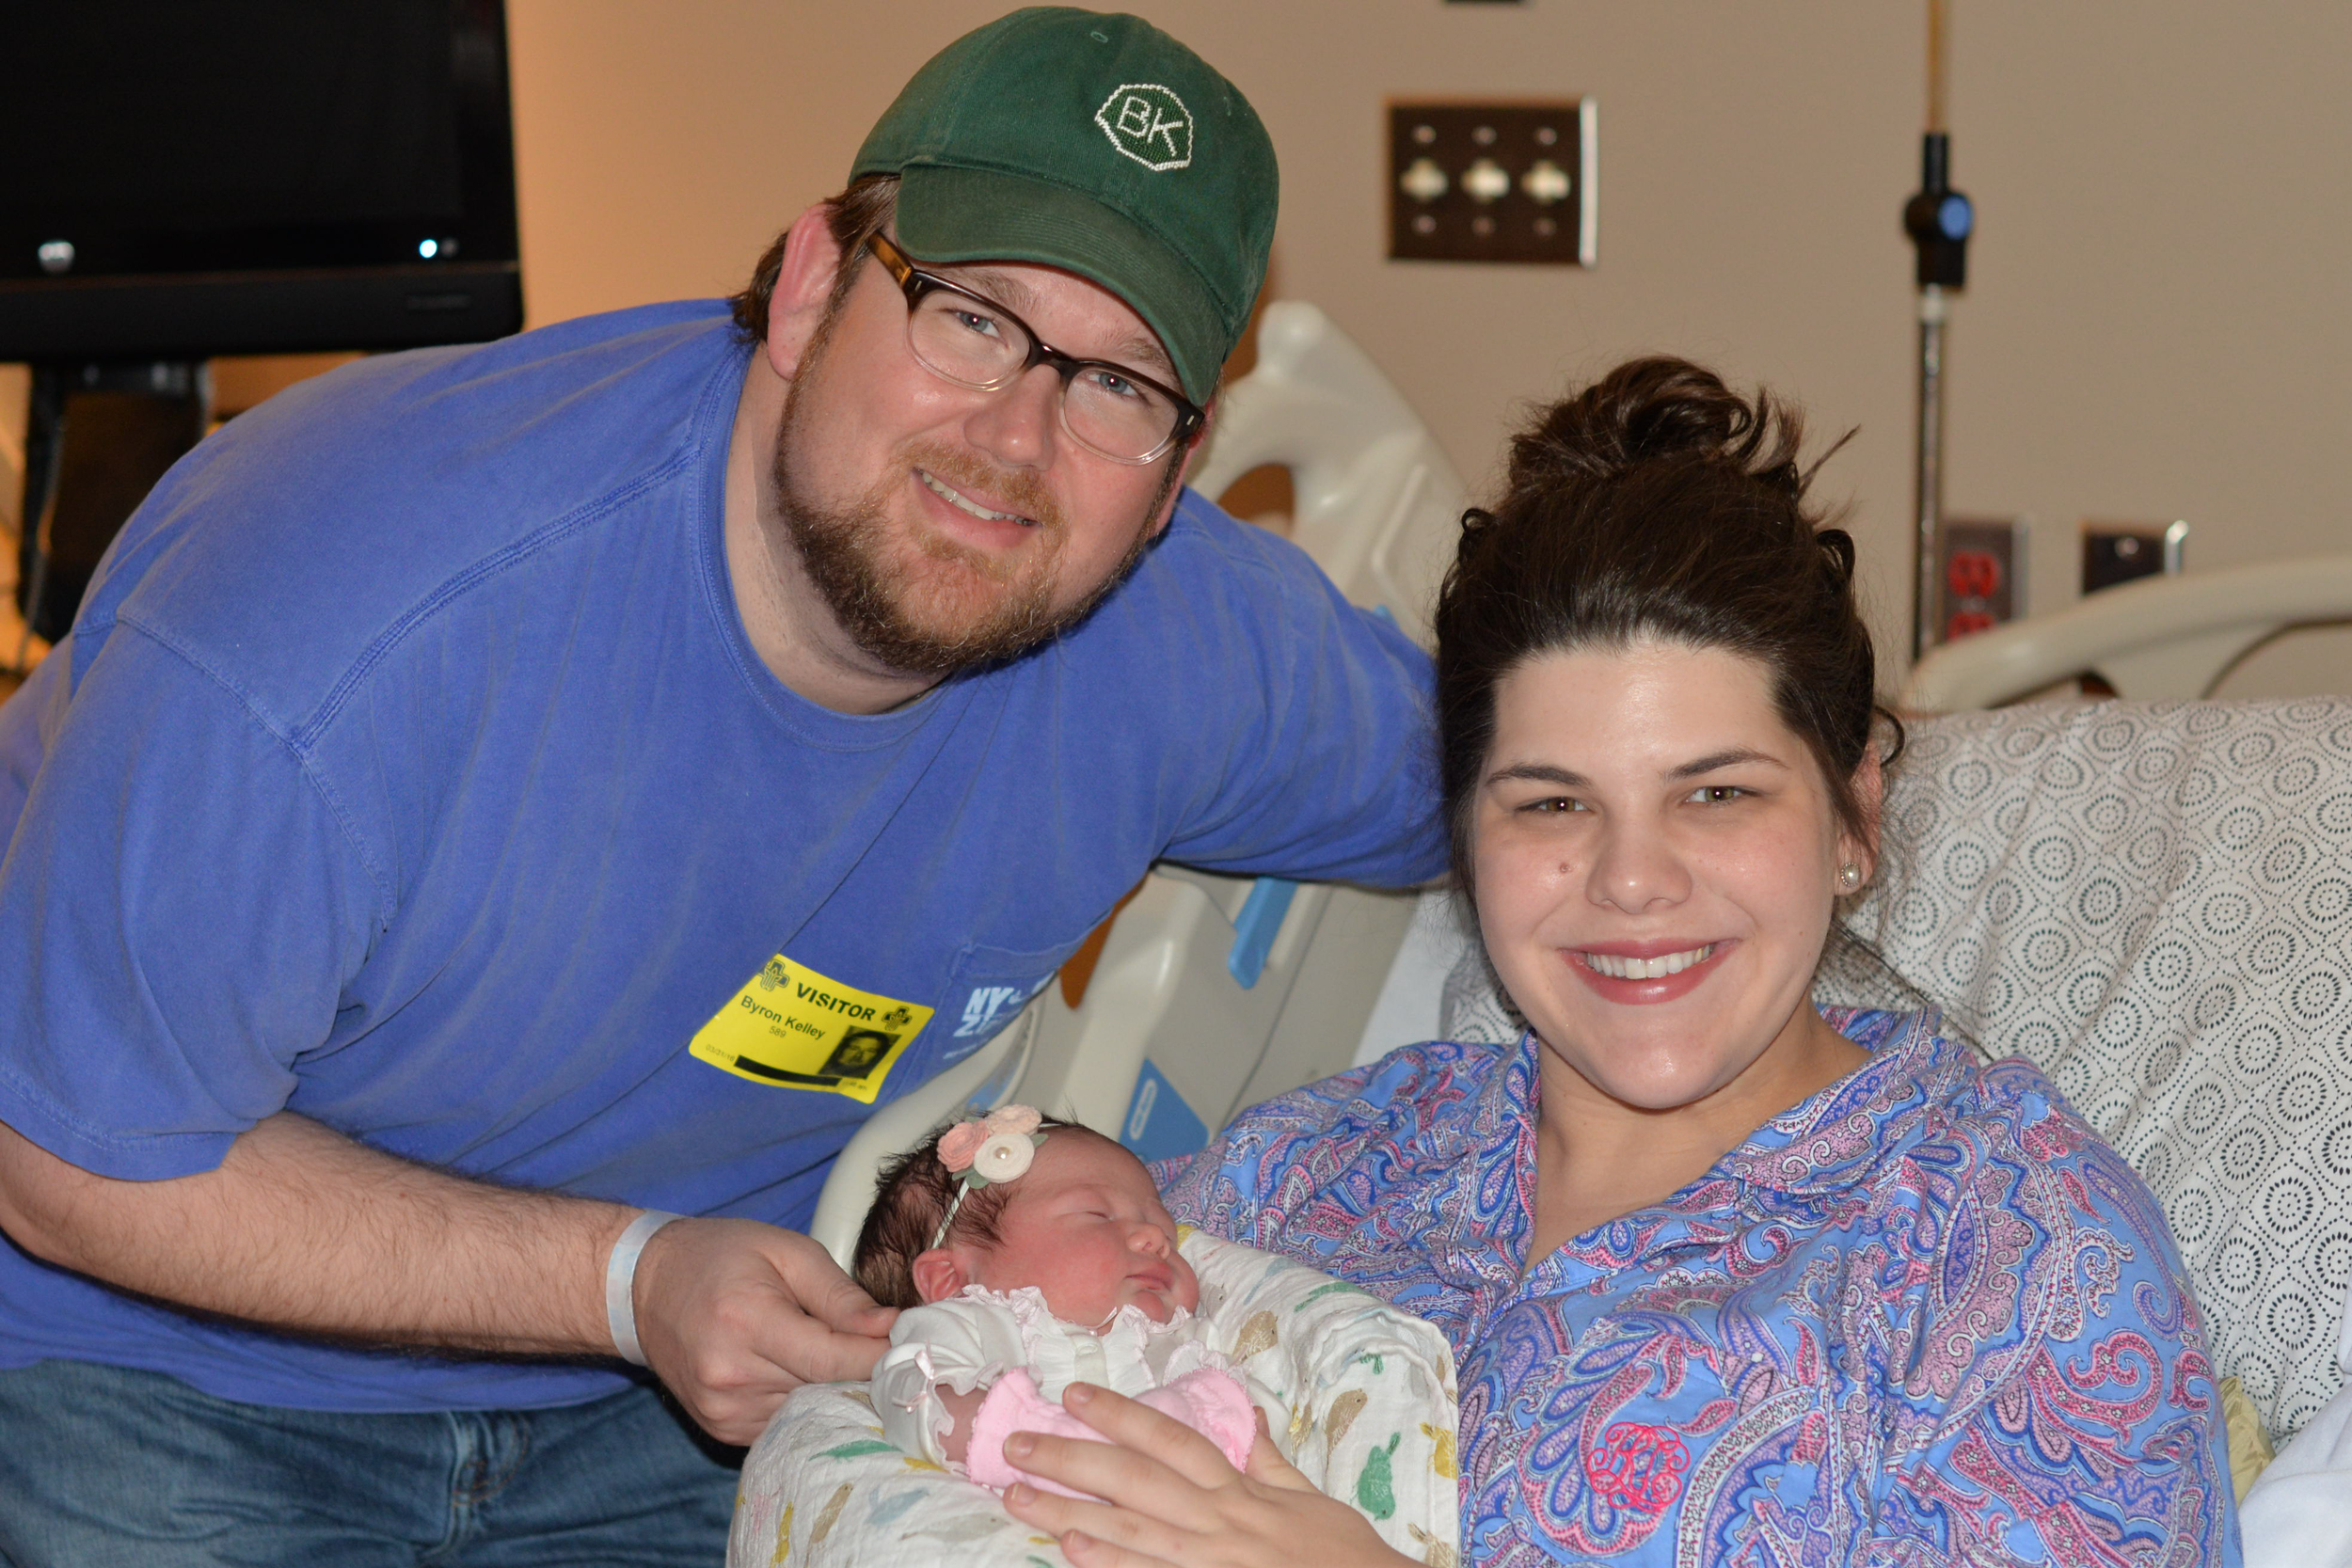 Proud new parents, Byron & Carley with their new baby Lucy.  ðŸ'�